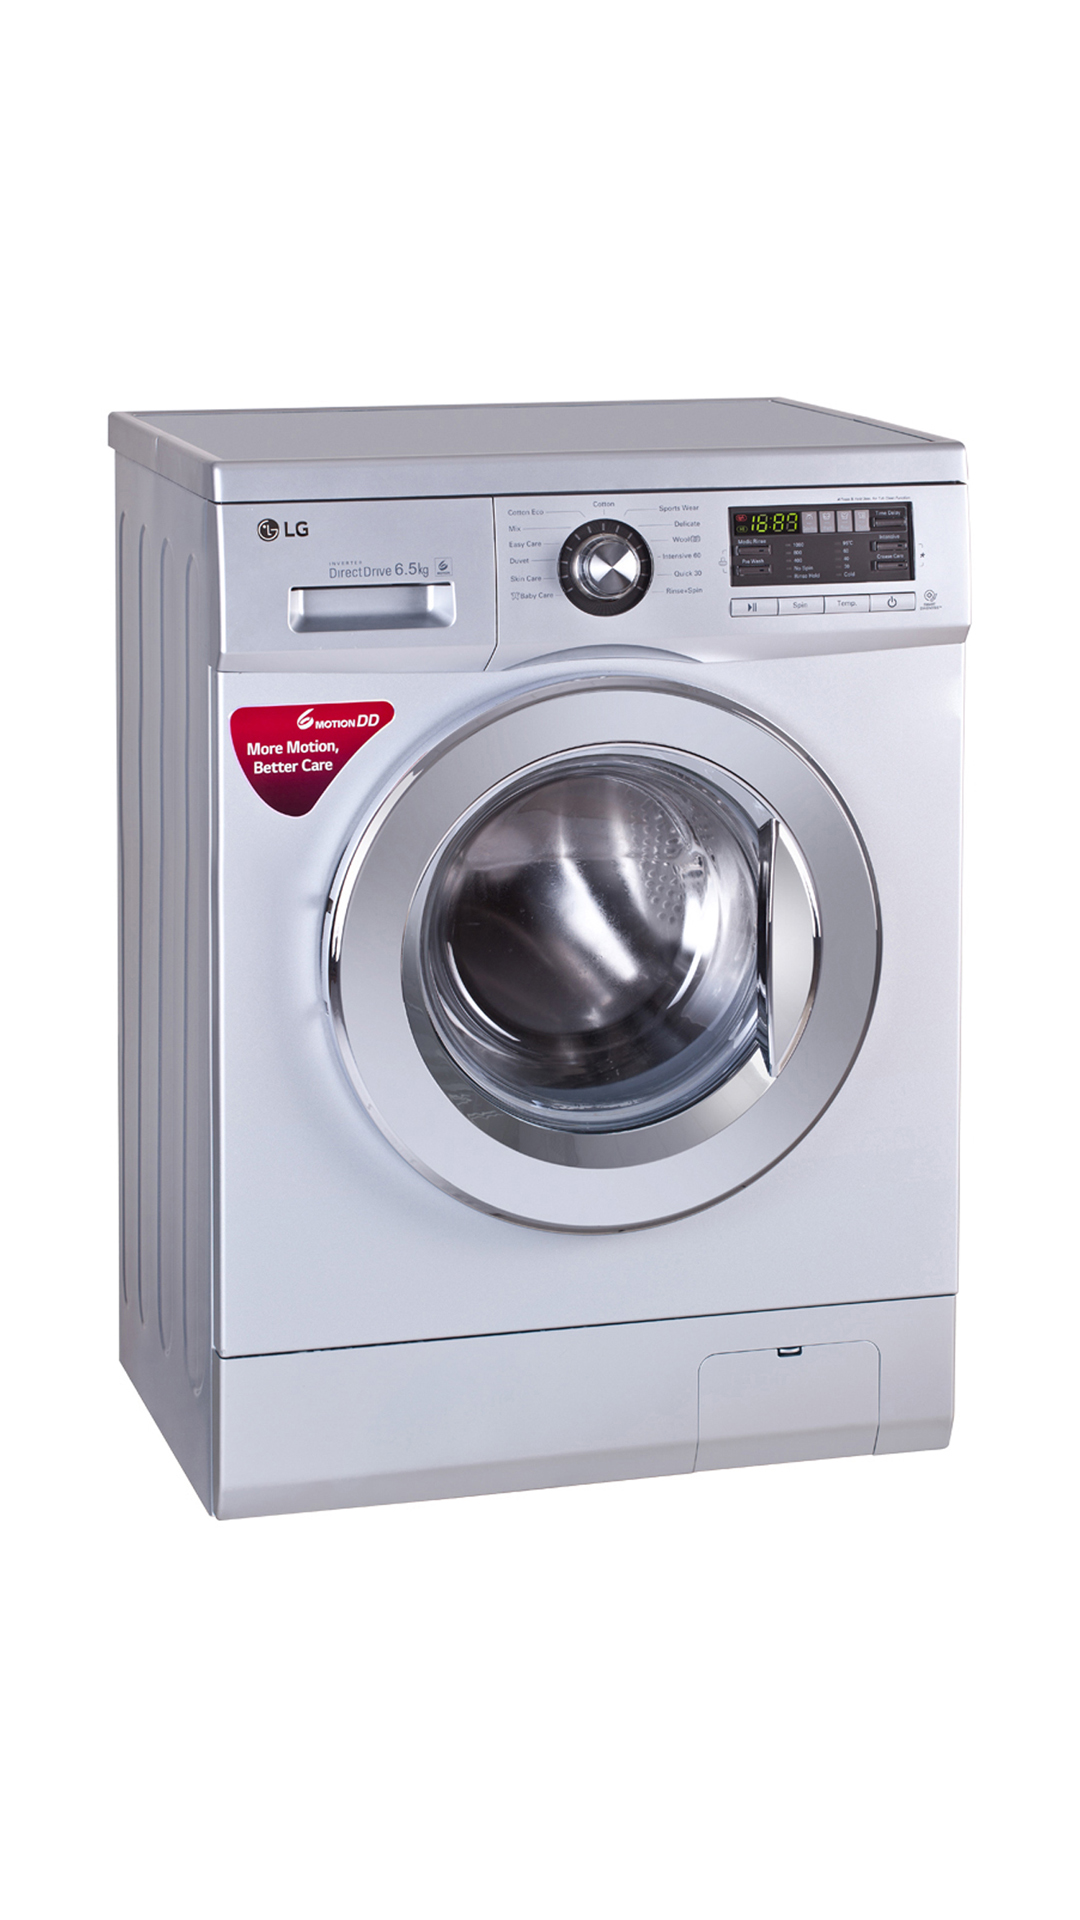 LG FH096WDL24 Fully Automatic Front Loading 6.5 kg Washing Machine (Luxary Silver)